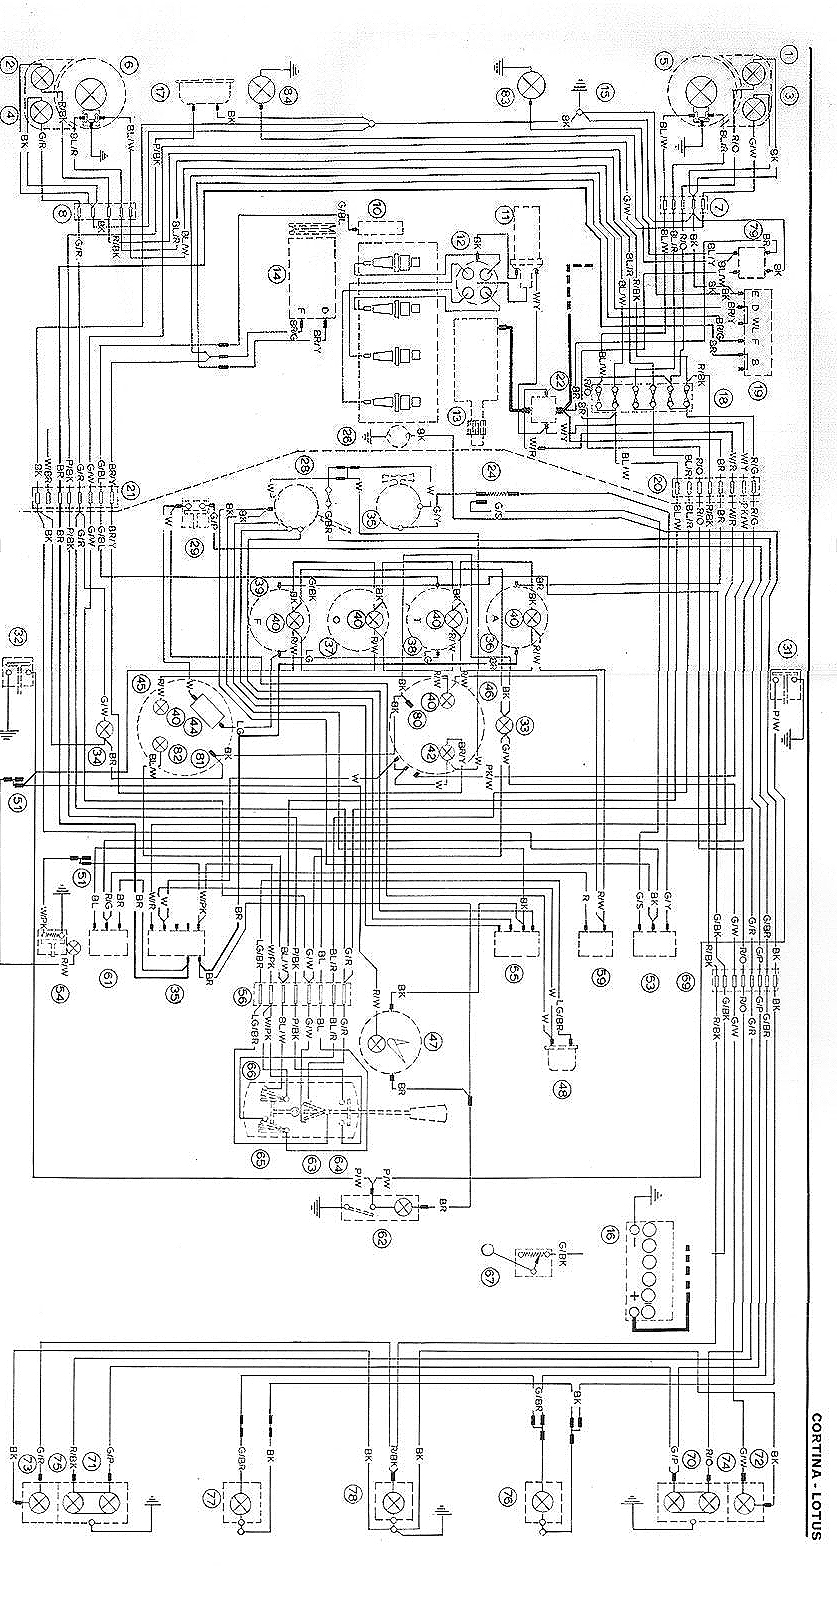 Ford Escort Mk2 Wiring Diagram Download: Free Ford Galaxy Wiring Diagram  Download - efcaviation.